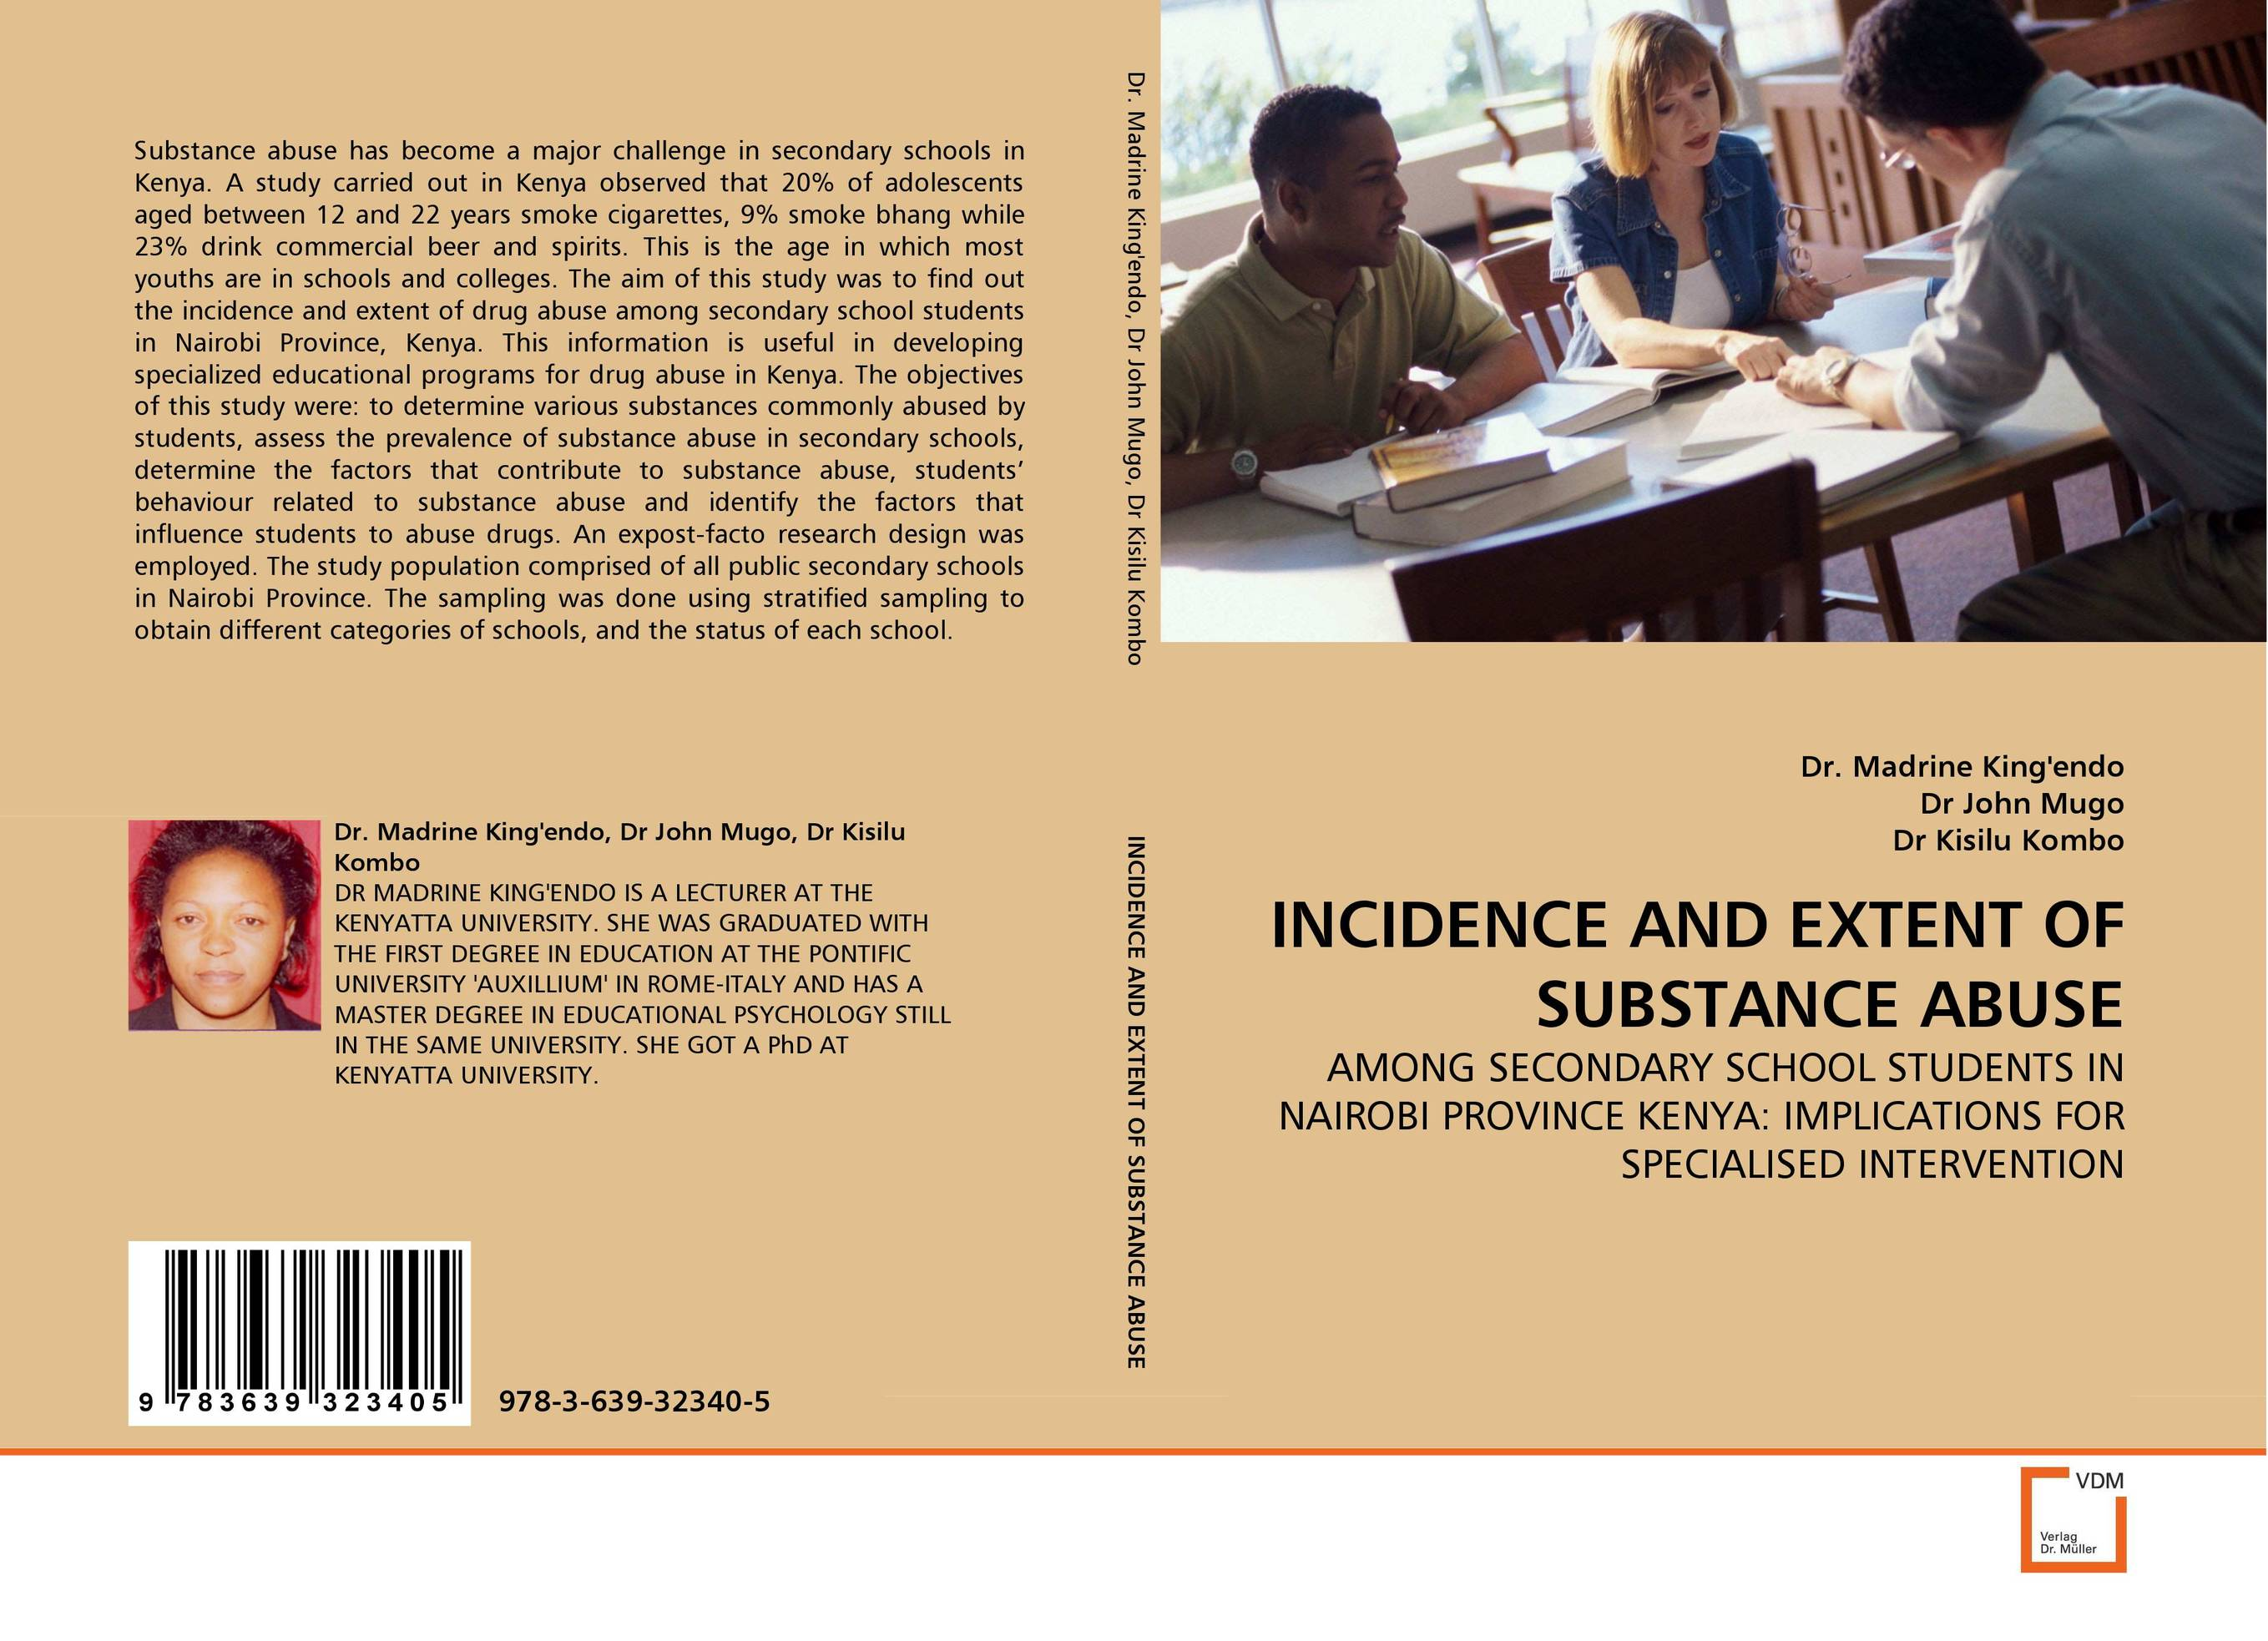 INCIDENCE AND EXTENT OF SUBSTANCE ABUSE